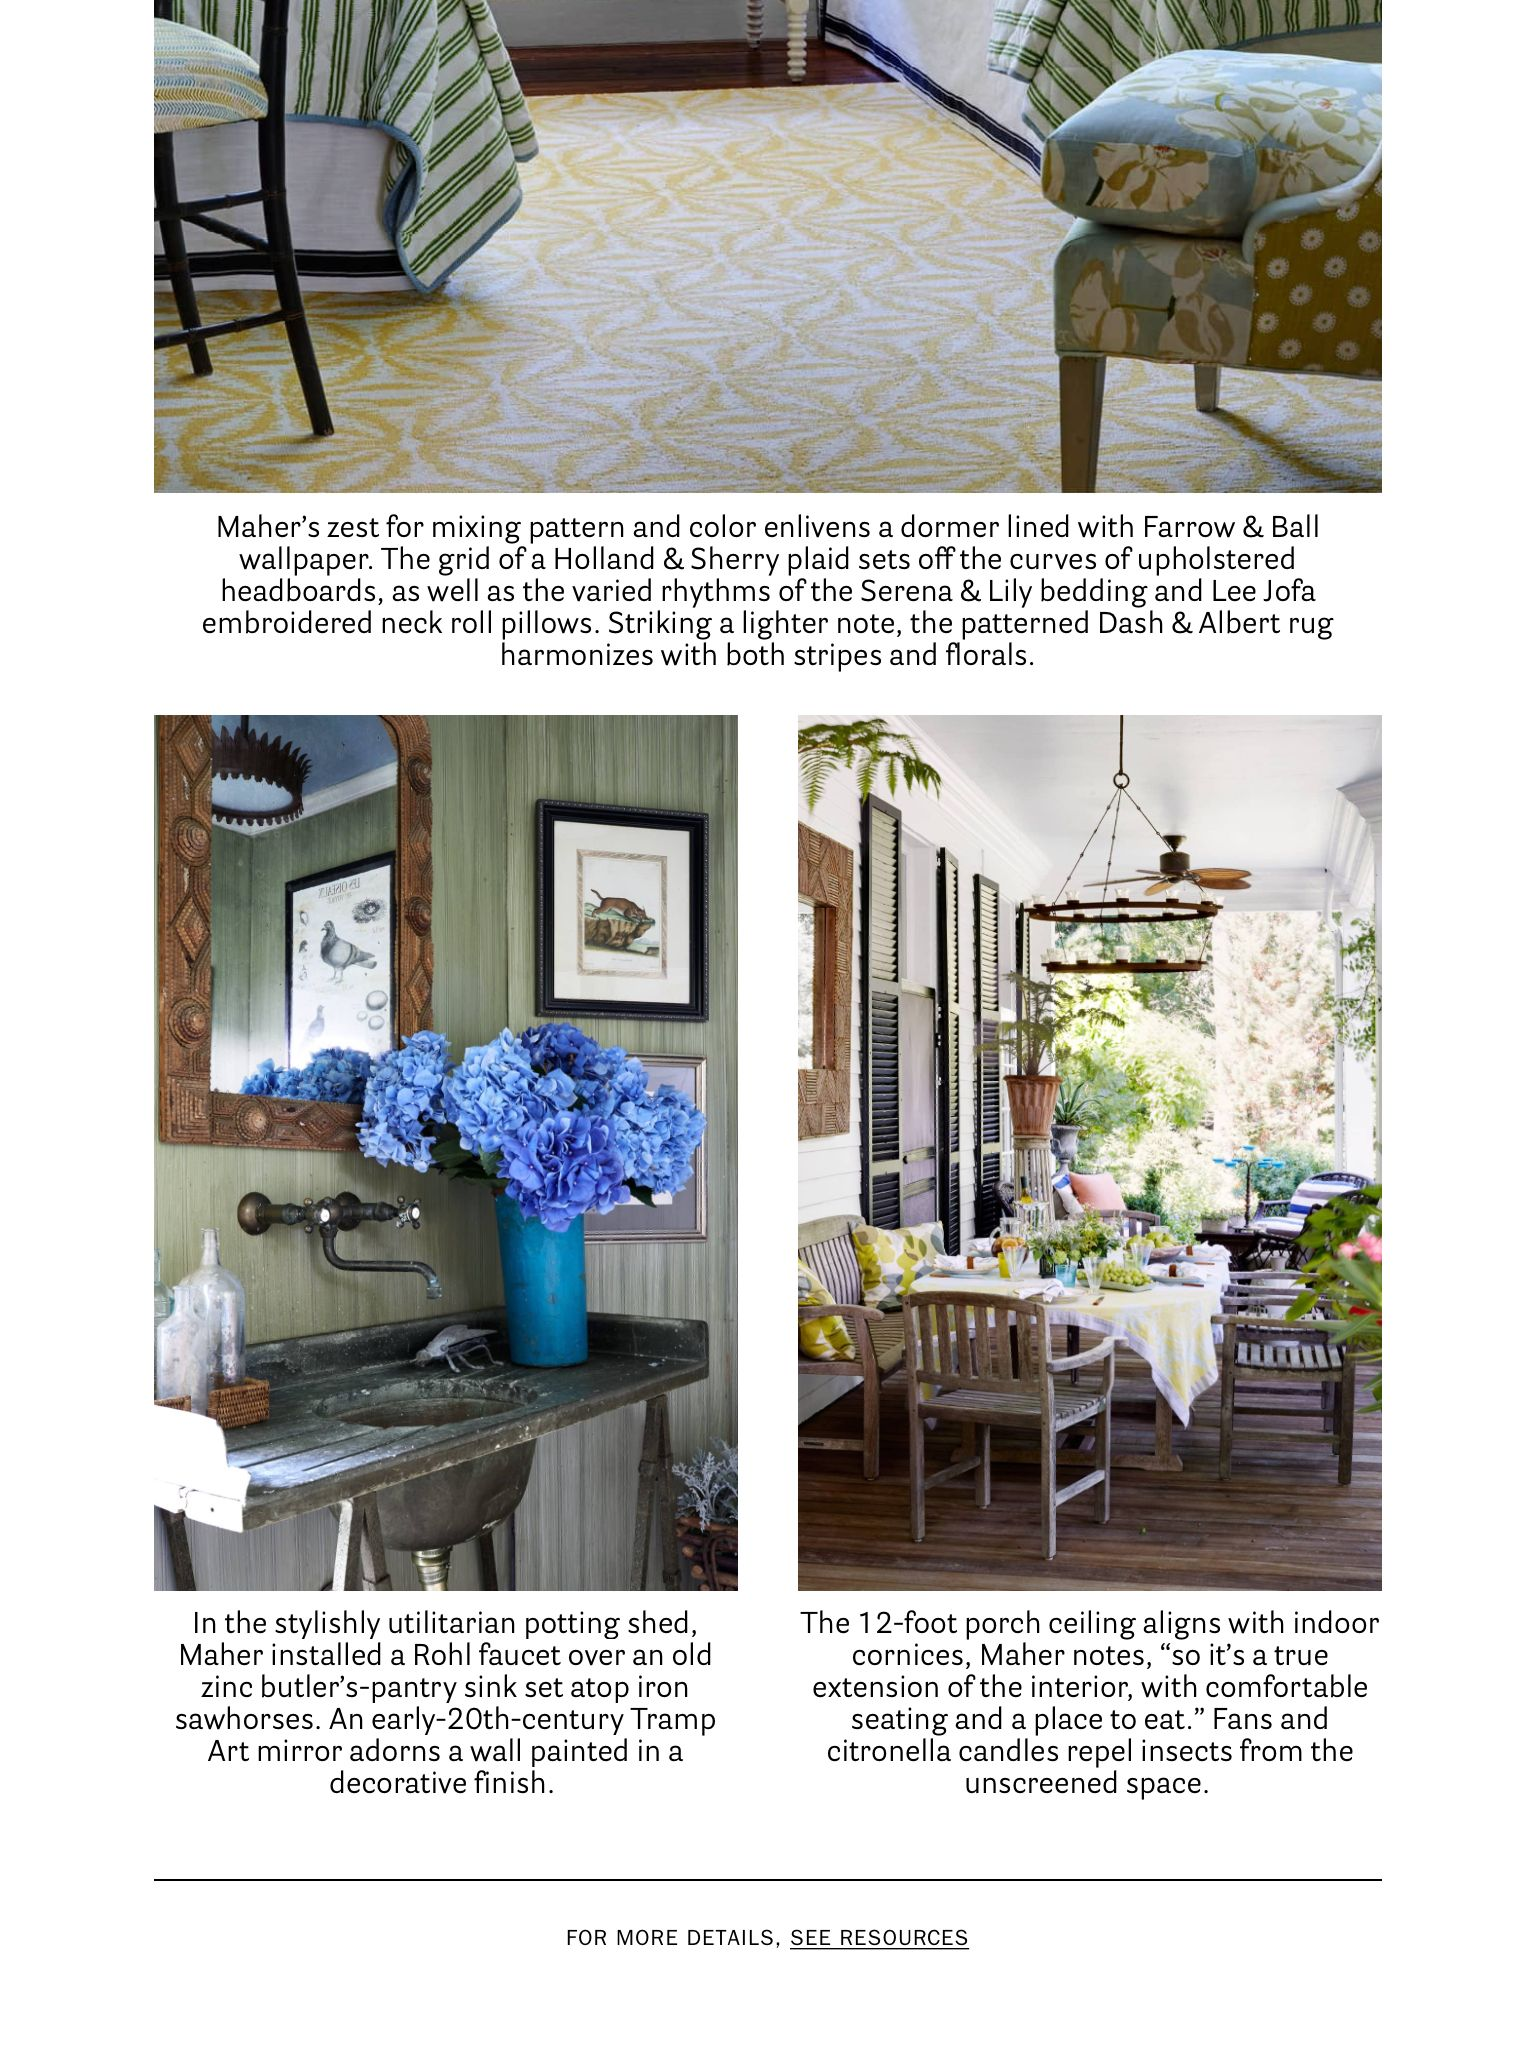 Garden state physical therapy -  Garden State Of Mind Michael Maher From House Beautiful May 2017